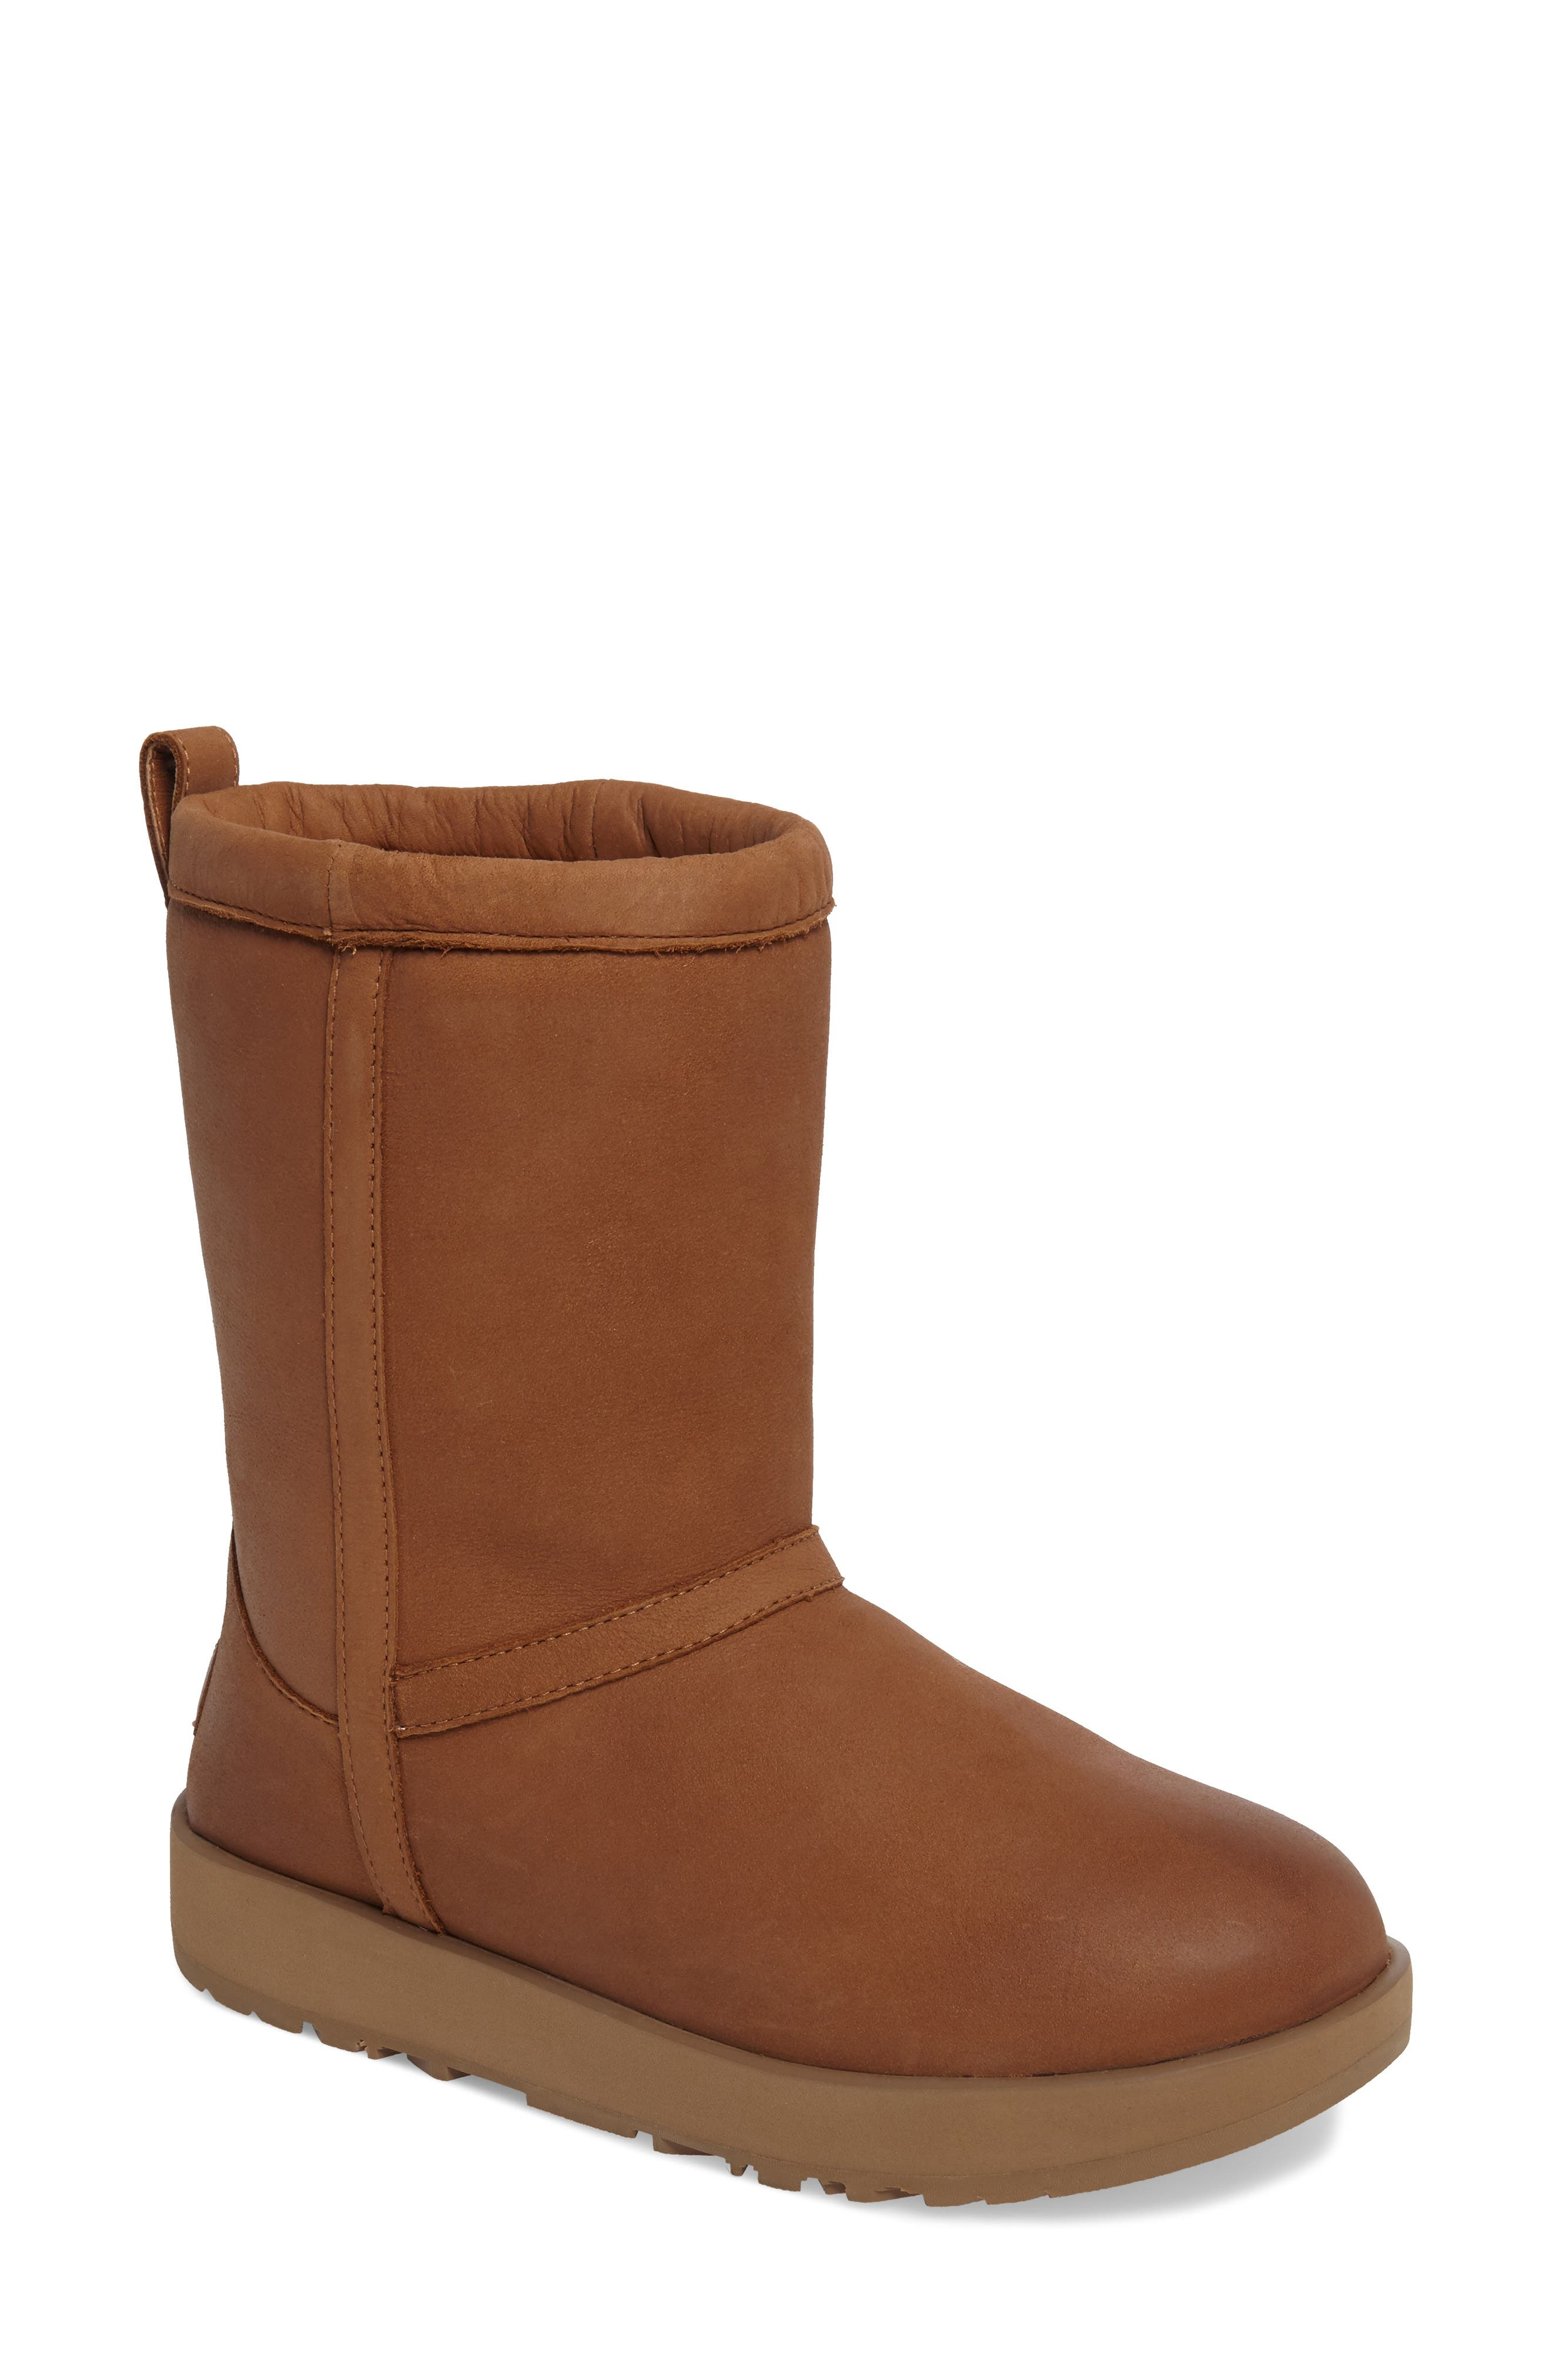 Classic Genuine Shearling Lined Short Waterproof Boot,                             Main thumbnail 1, color,                             Chestnut Leather